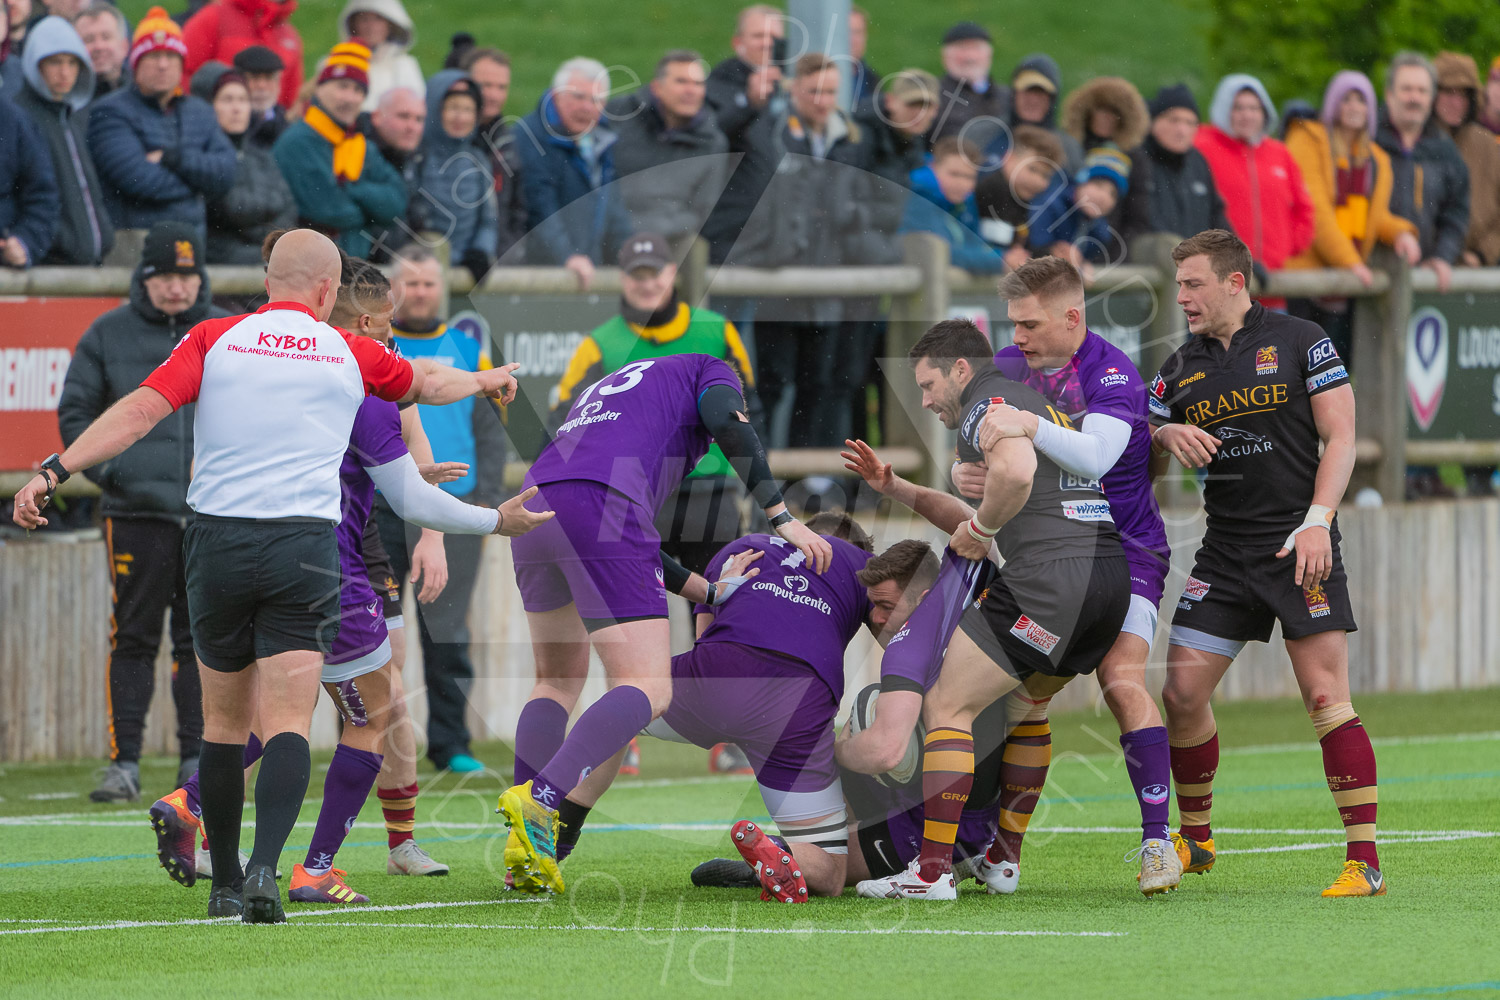 20190427 Loughborough vs Ampthill 1st XV #6471